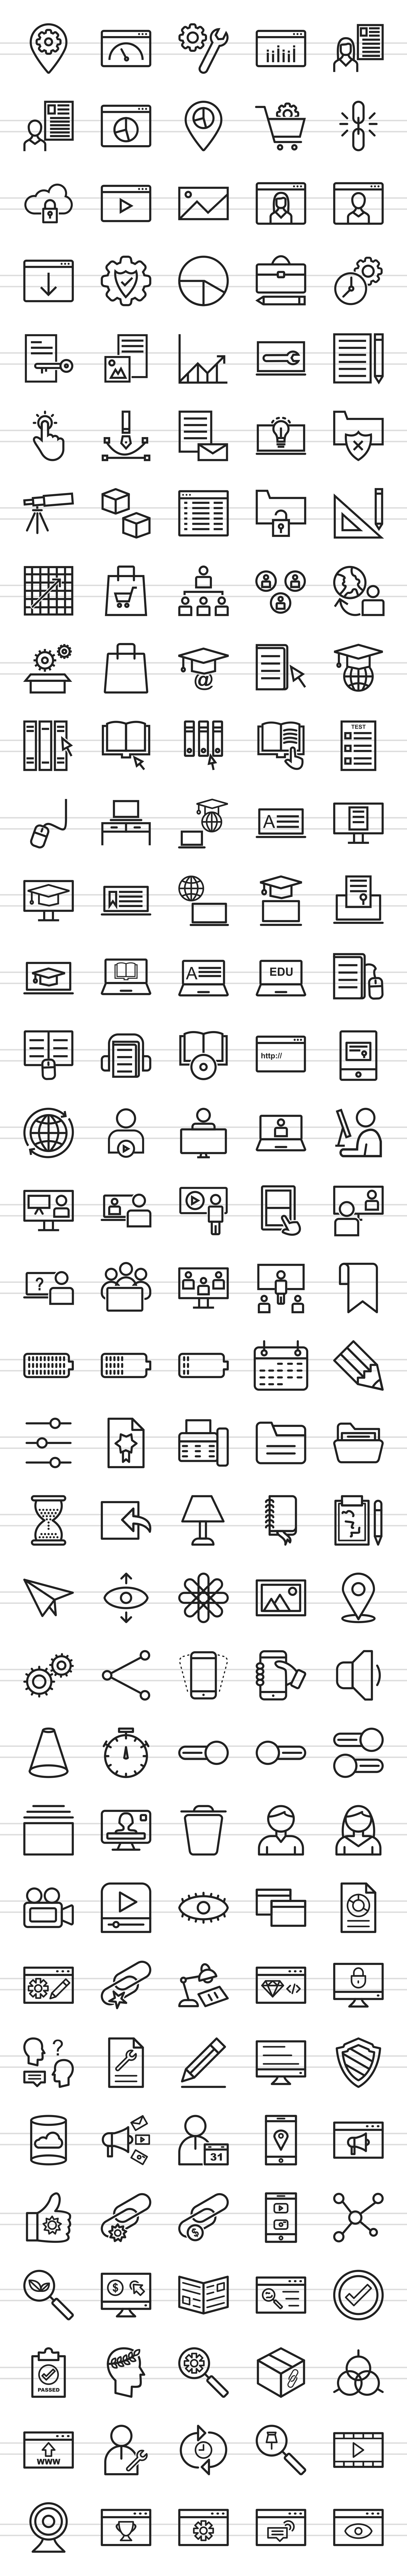 166 Web Line Icons example image 2